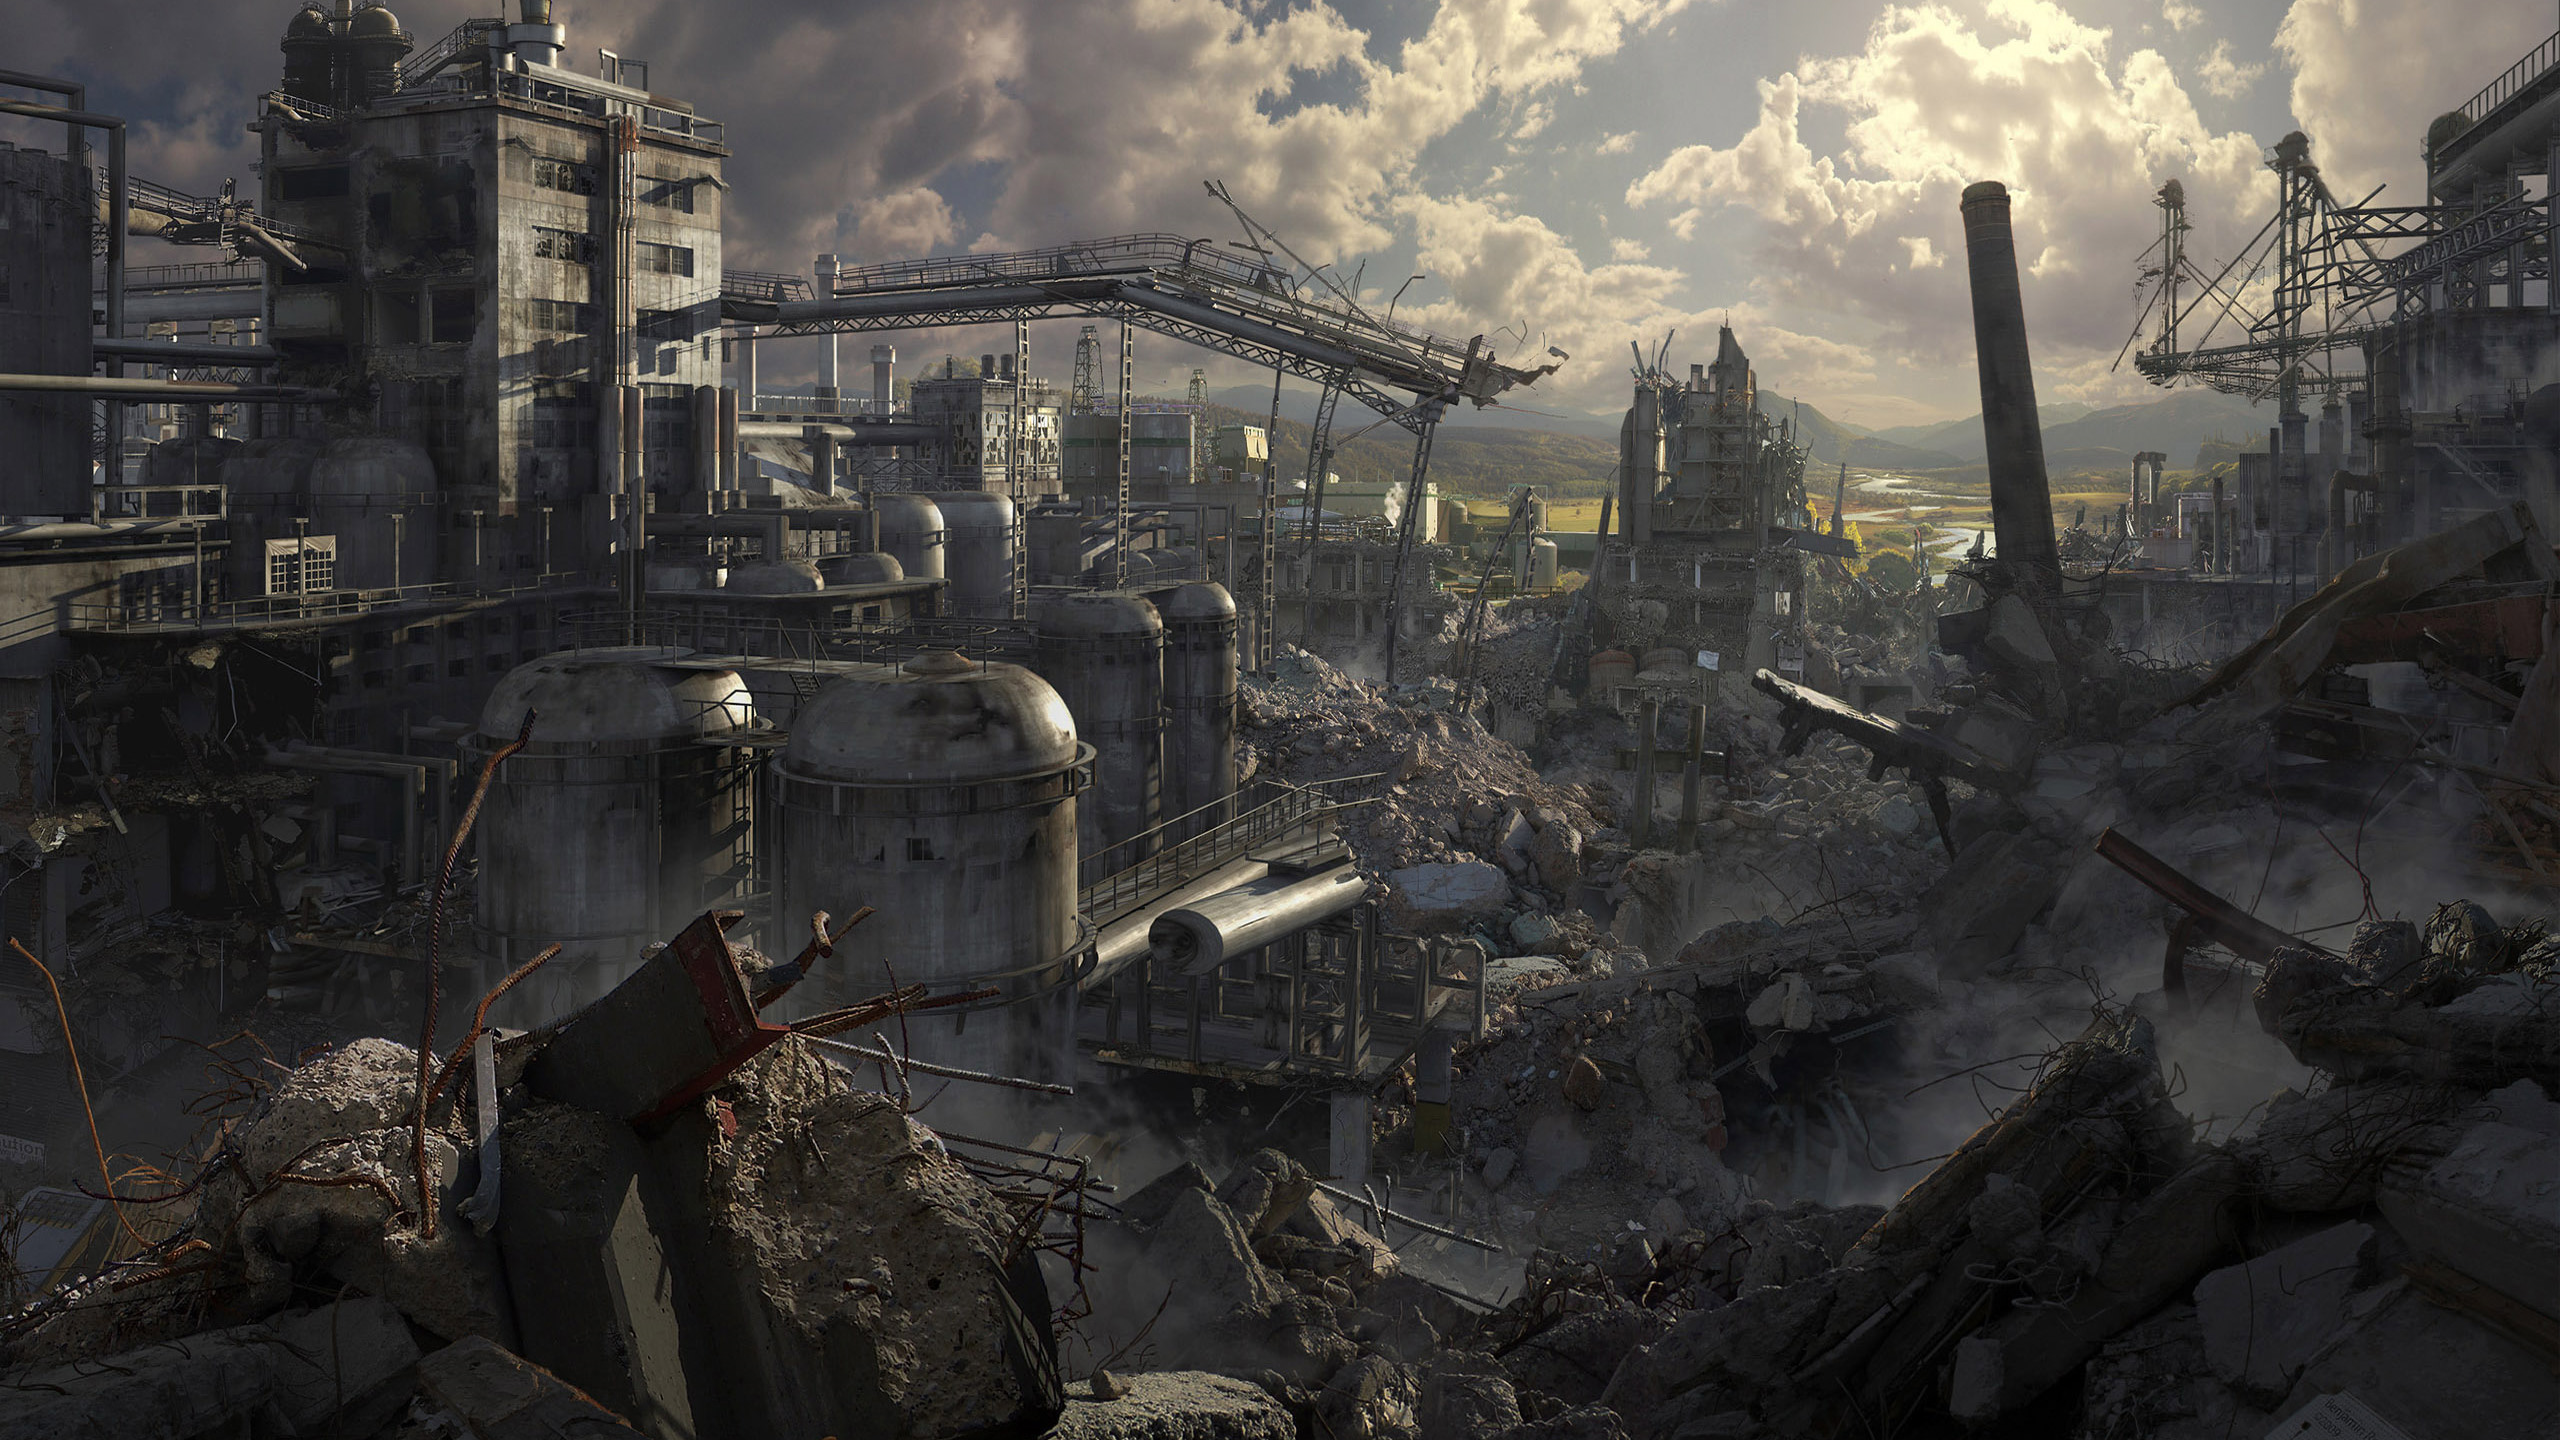 263 Post Apocalyptic HD Wallpapers | Backgrounds - Wallpaper Abyss